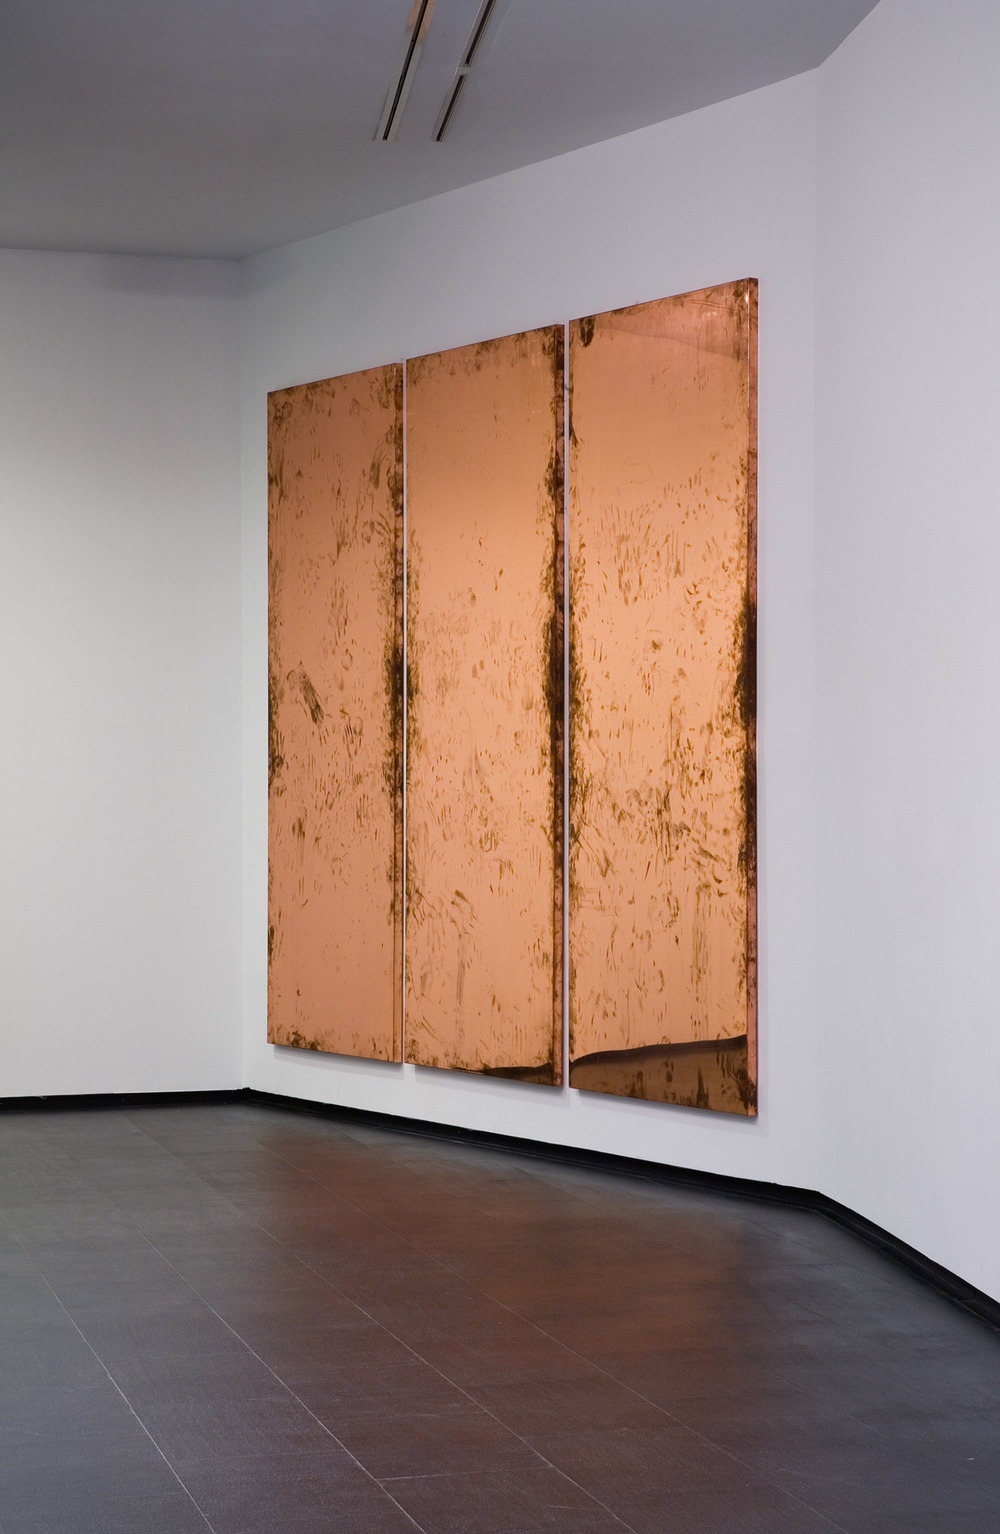 Copper Surrogate (February 10–17/ May 2–6 2011, Malmo, Sweden; June 13–20/ October 31–November 4, 2011, Madrid, Spain; June 8/18, 2012, Basel, Switzerland; October 22, 2015, Beirut, Lebanon)    2011–   Polished copper  116 x 45 3/4 x 2 inches, each, 9 parts   A Diagram of Forces, 2011